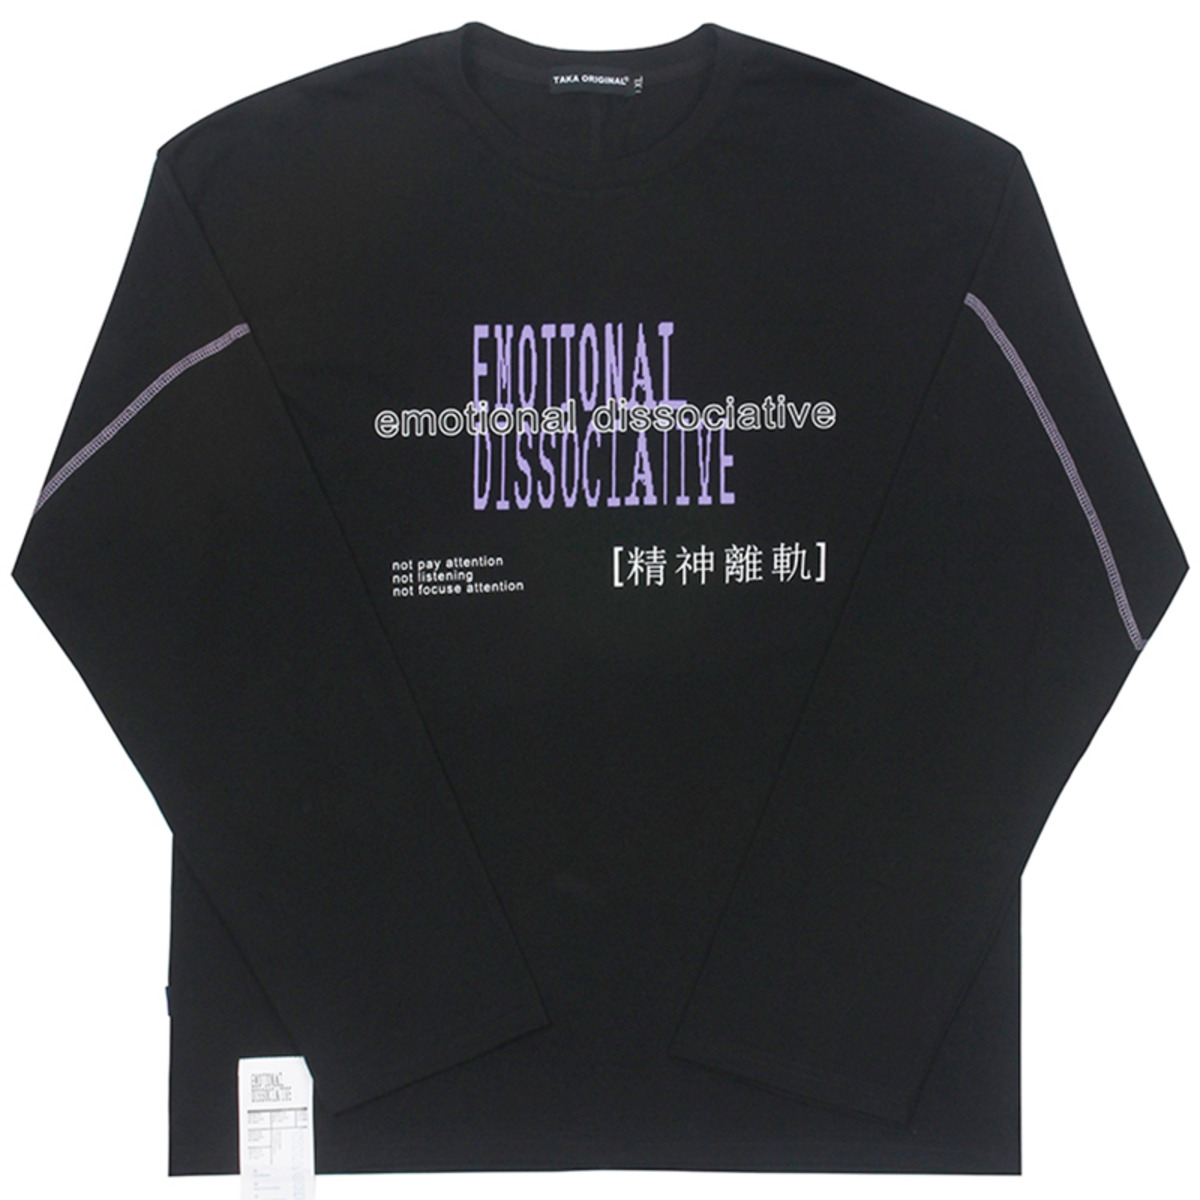 TAKA ORIGINAL EMOTIONAL DISSOCIATIVE LONG SLEEVES